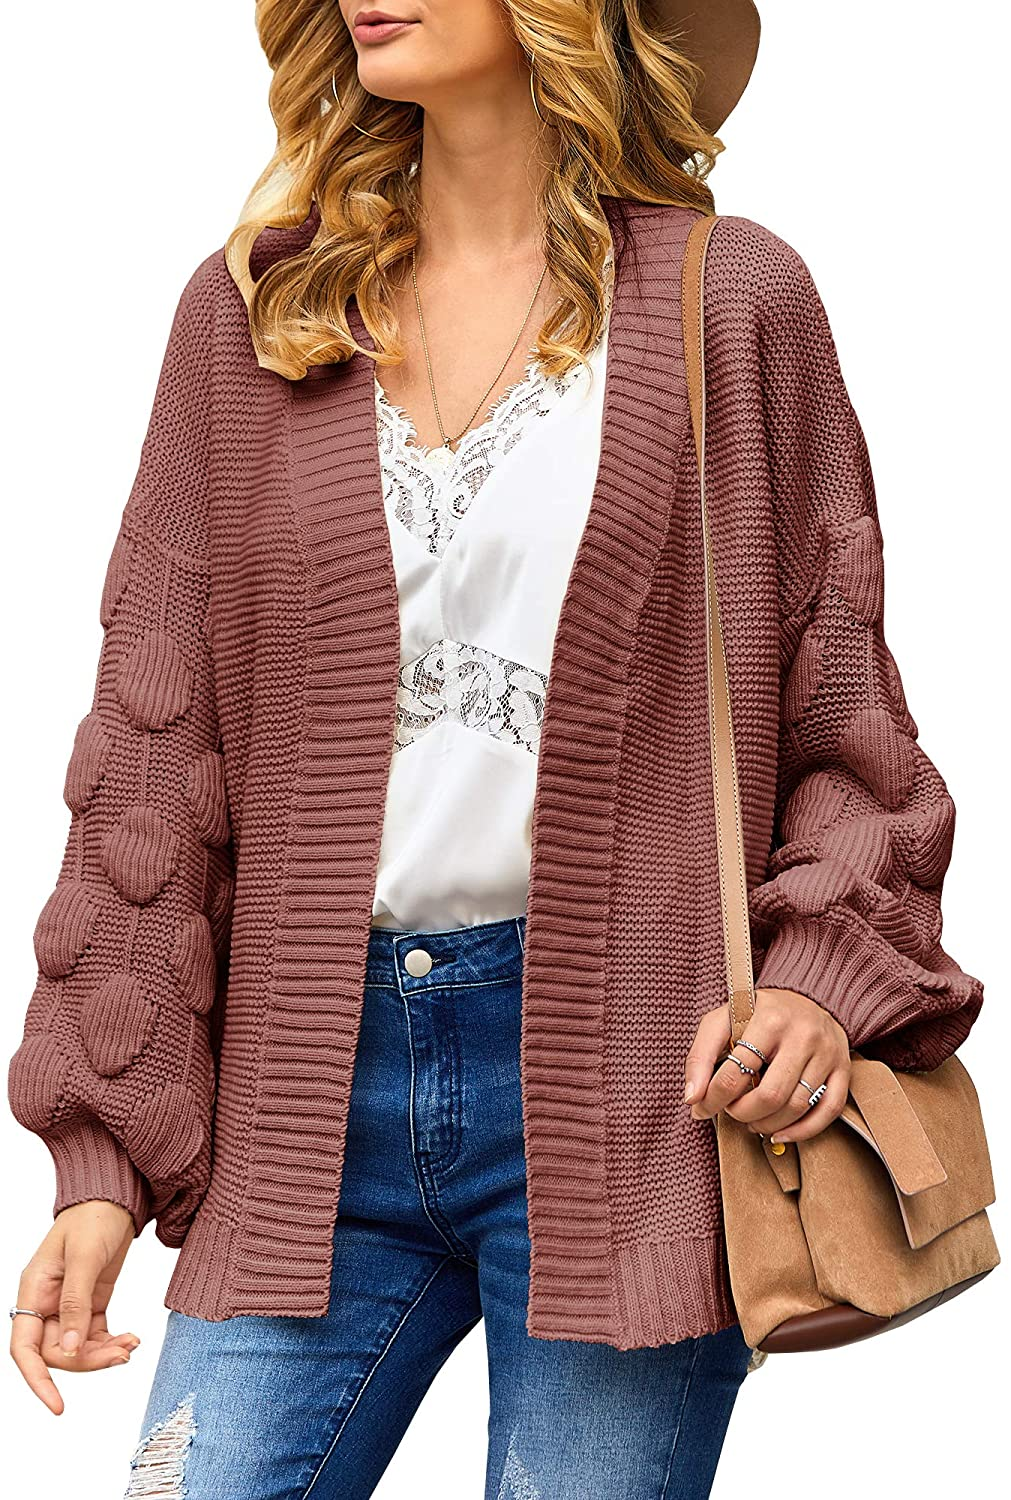 Yacooh Womens Oversized Chunky Knit Cardigan Sweaters Open Front Pom Pom Long Balloon Sleeve Solid Loose Sweater Outwear